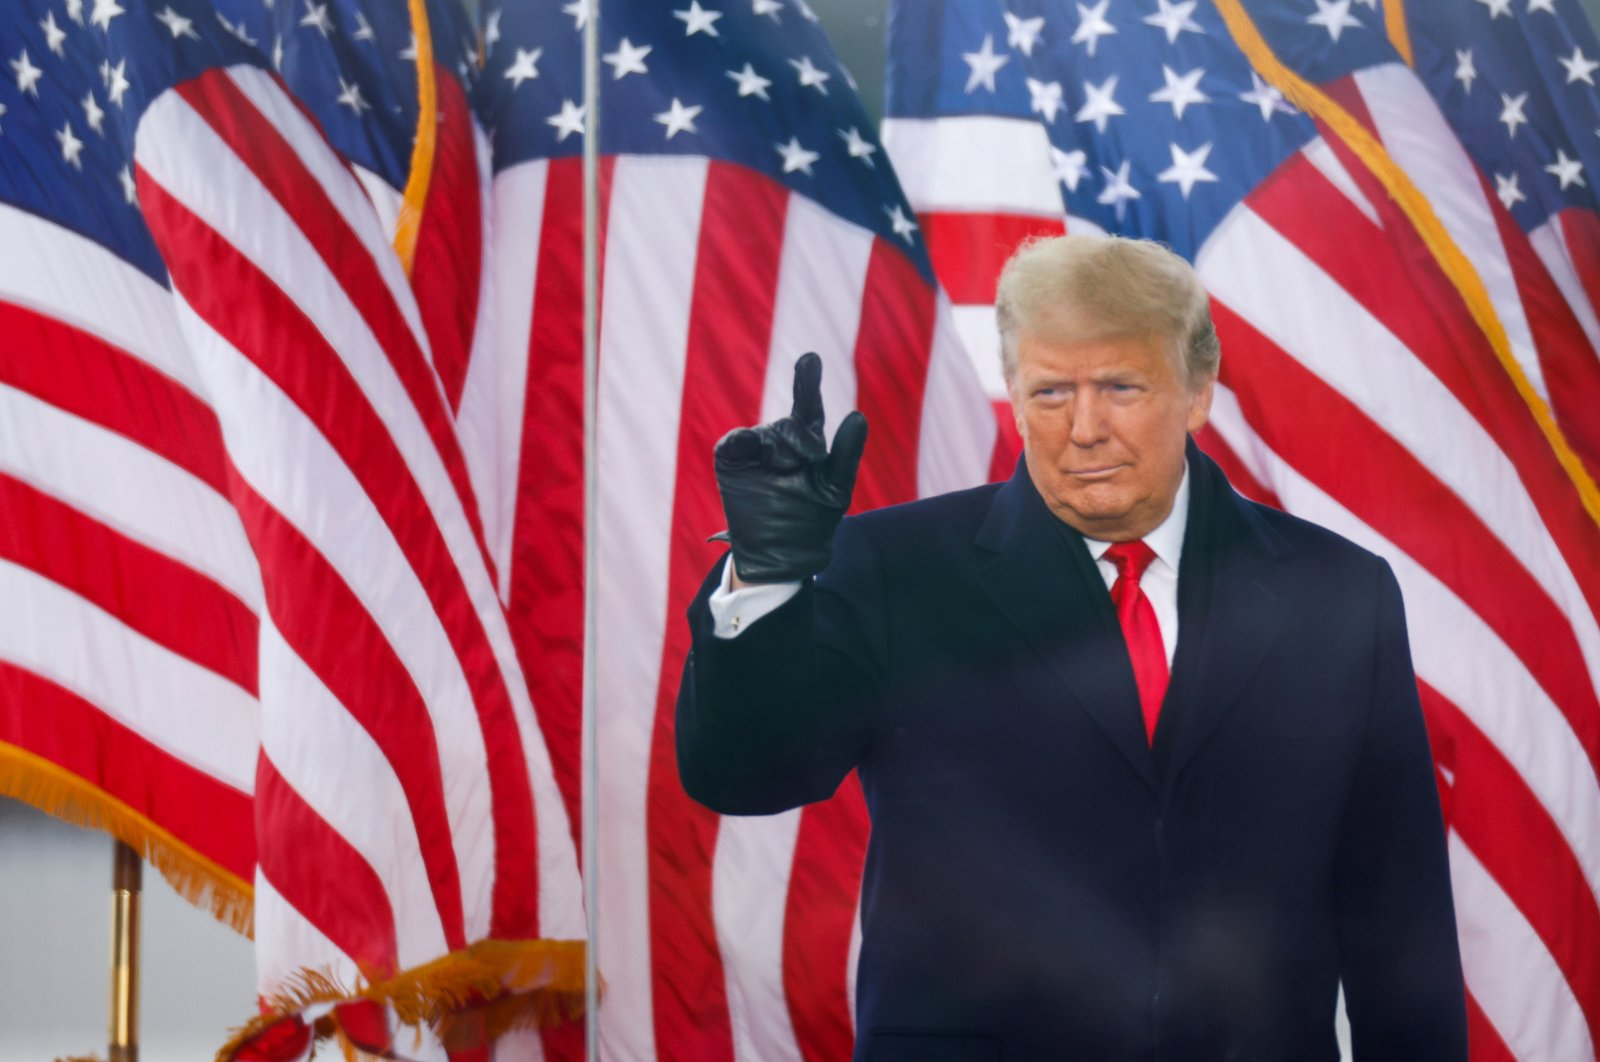 U.S. President Donald Trump gestures during a rally to contest the certification of the 2020 U.S. presidential election results by the U.S. Congress, in Washington, D.C., Jan. 6, 2021. (Reuters Photo)